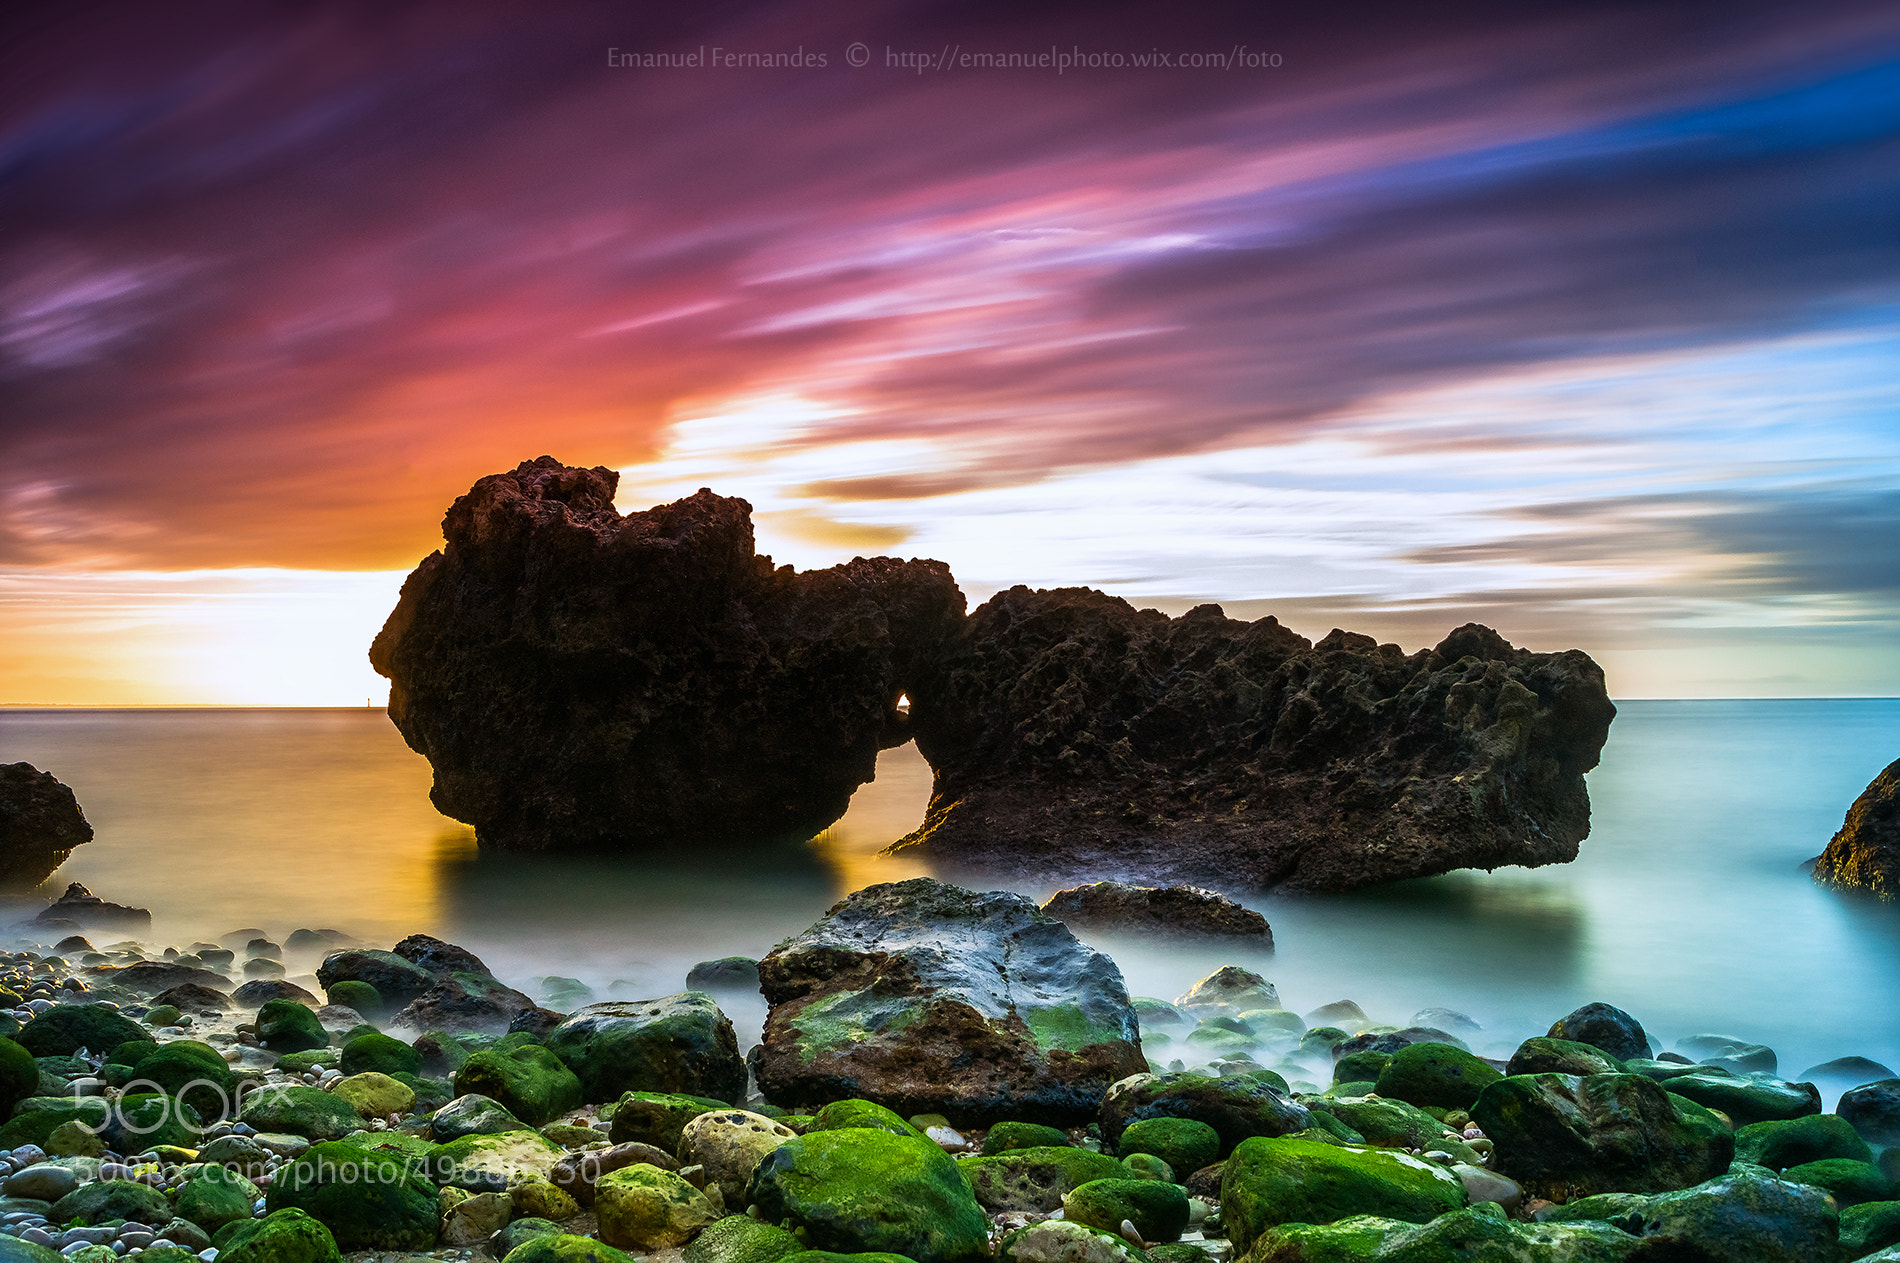 Photograph Magic place - Setubal, Portugal by Emanuel Fernandes on 500px